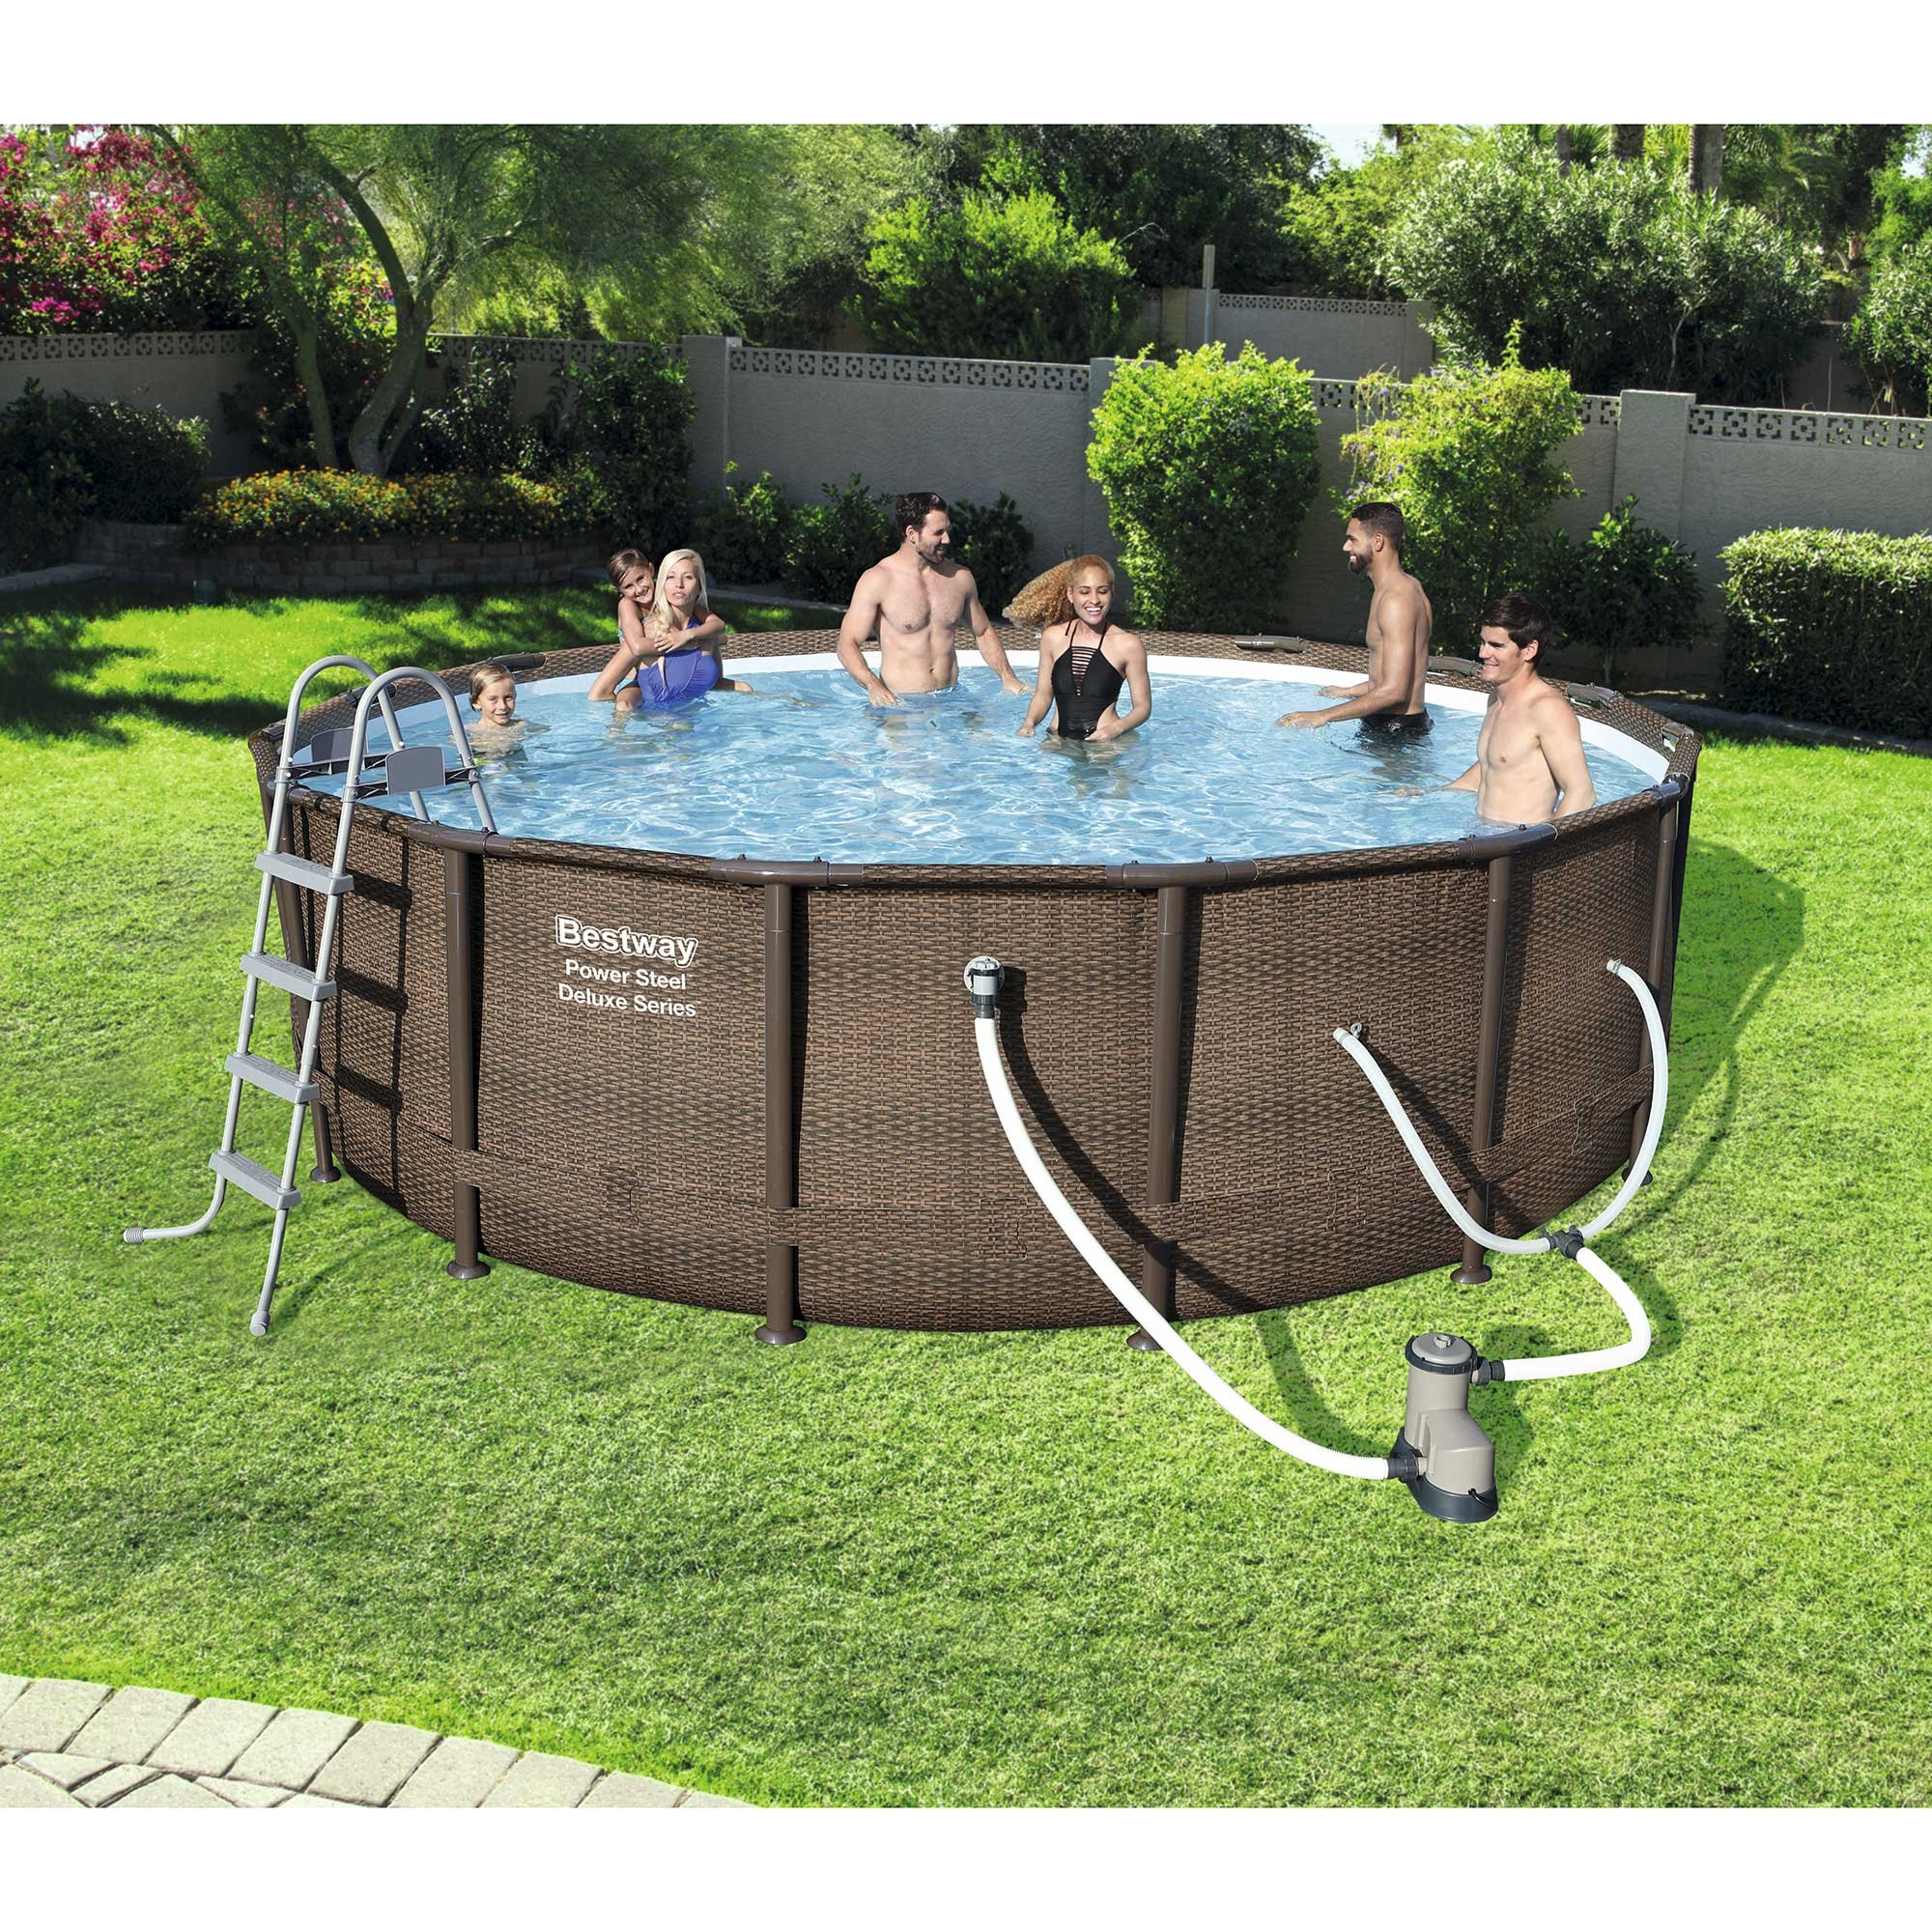 Bestway 14' x 42'' Power Steel Frame Above Ground Swimming Pool Set with Pump